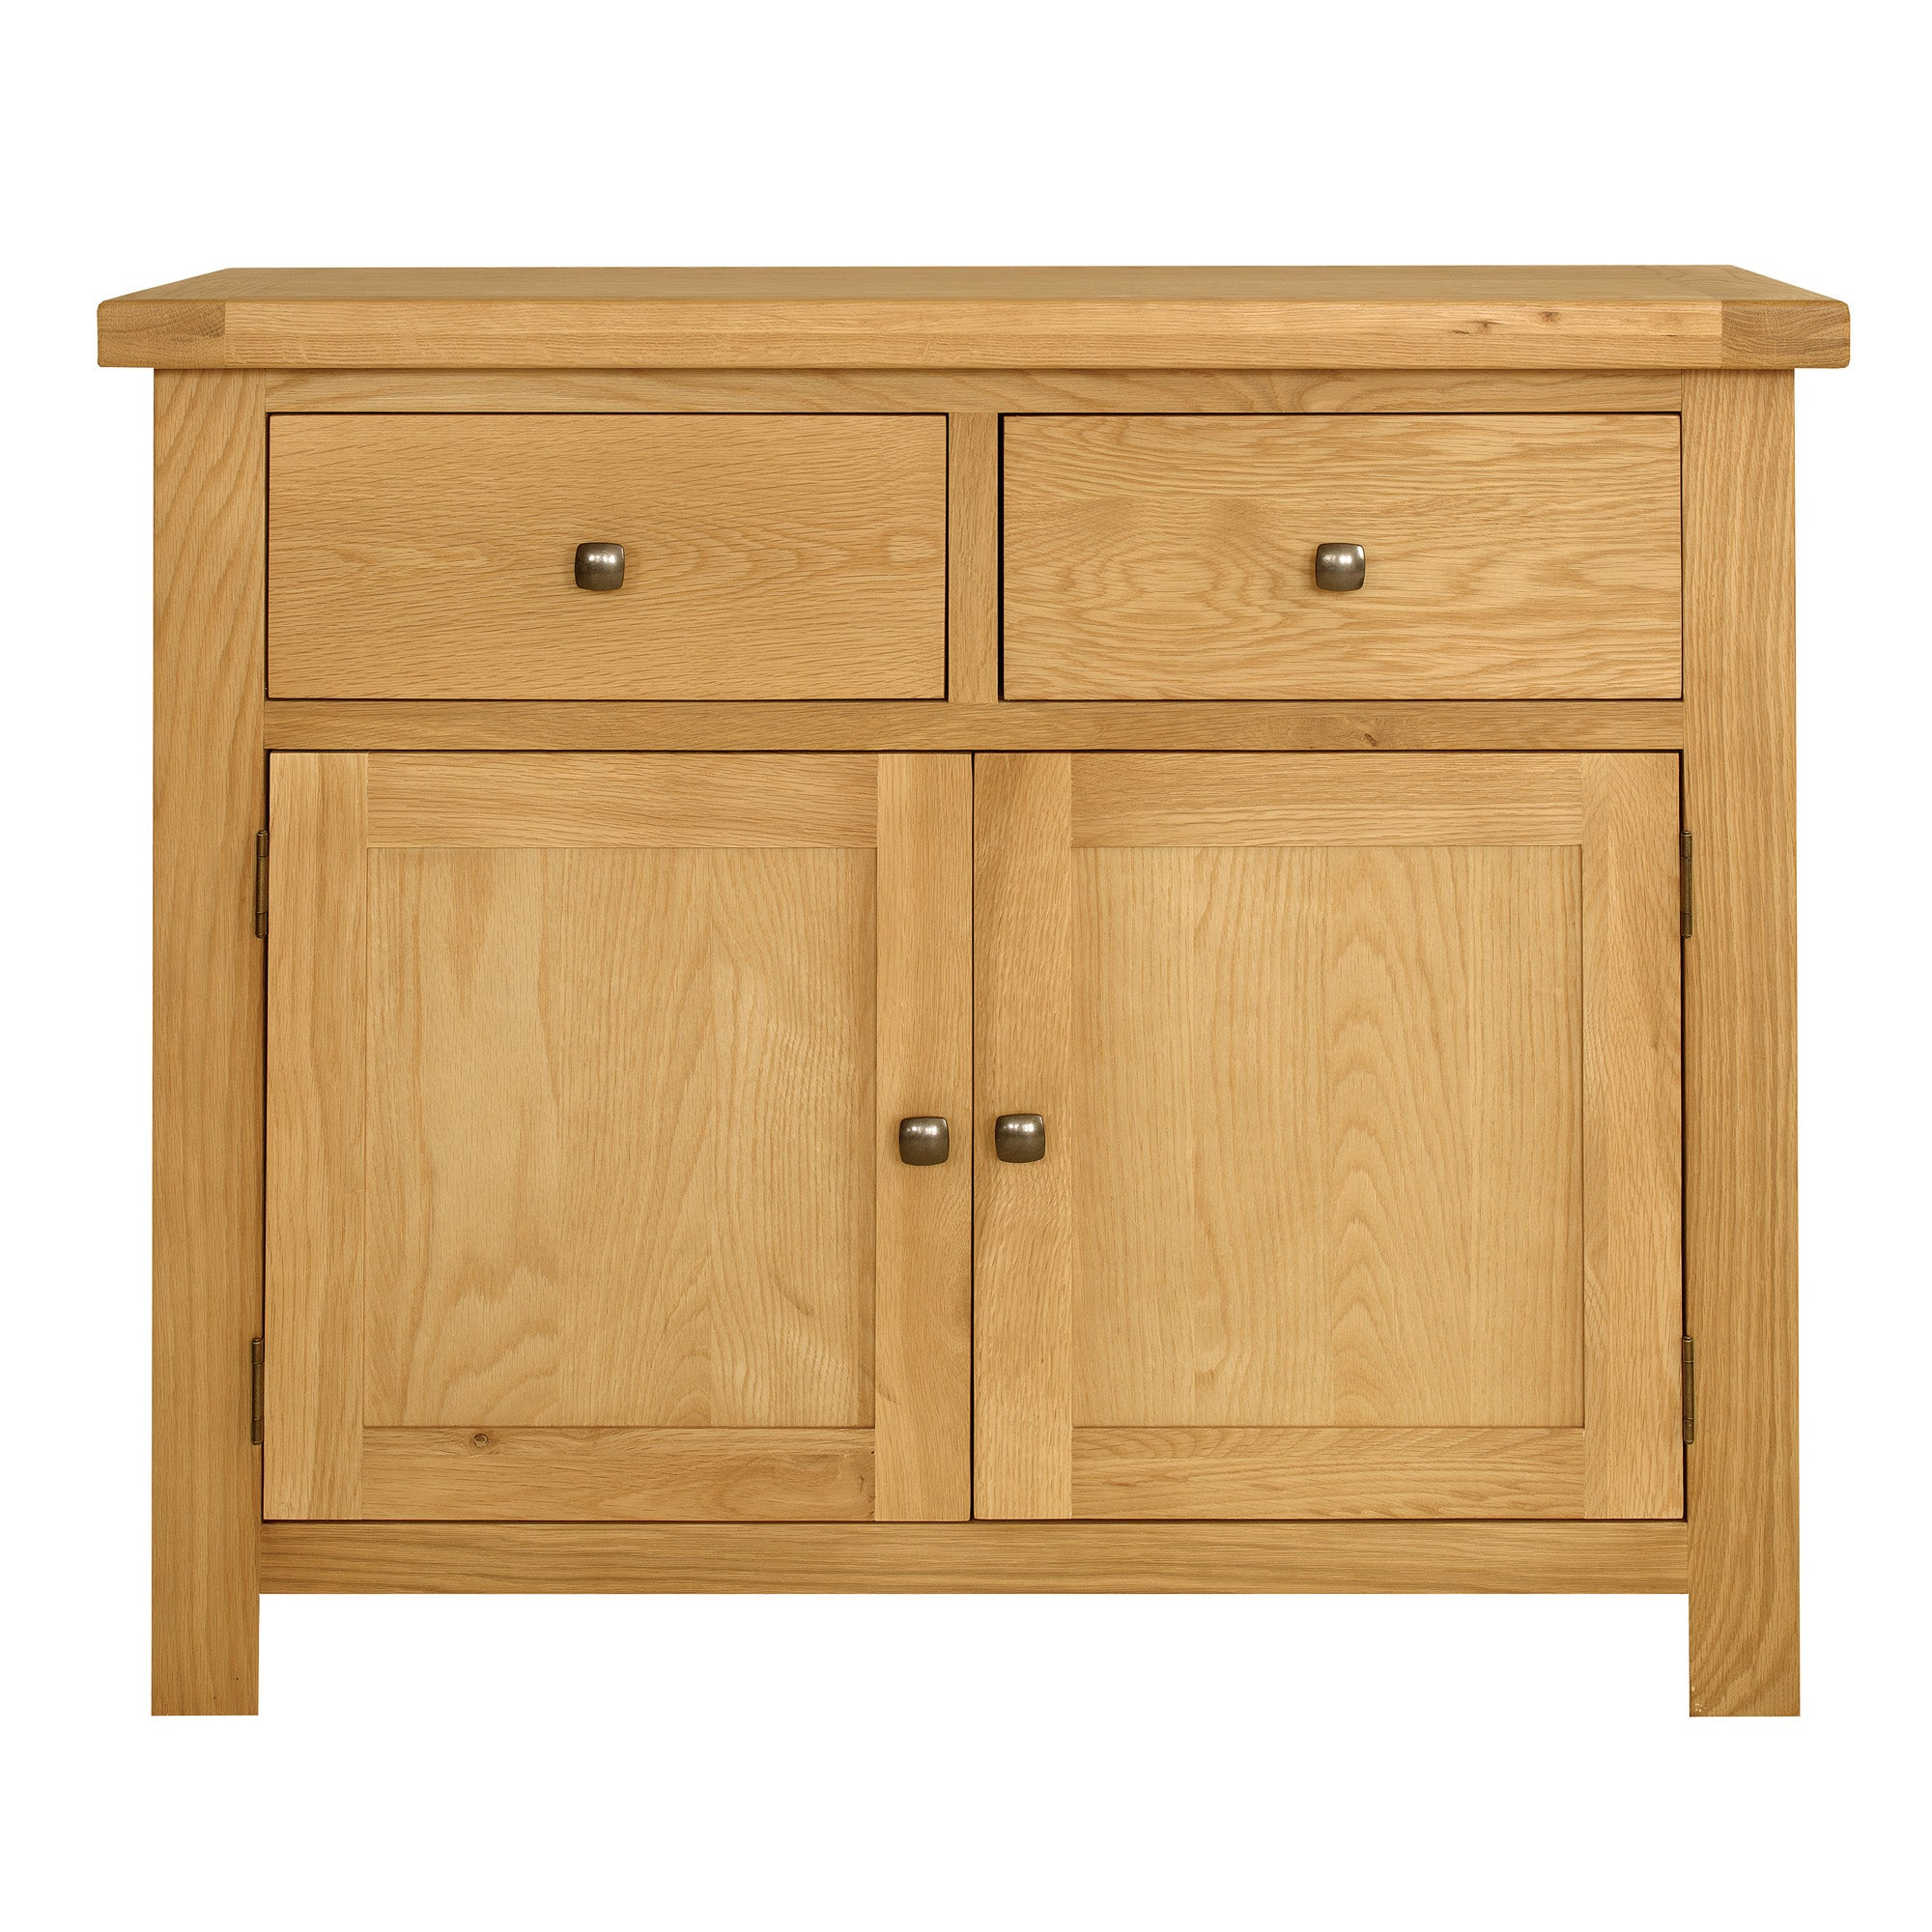 Harrogate Oak Small Sideboard